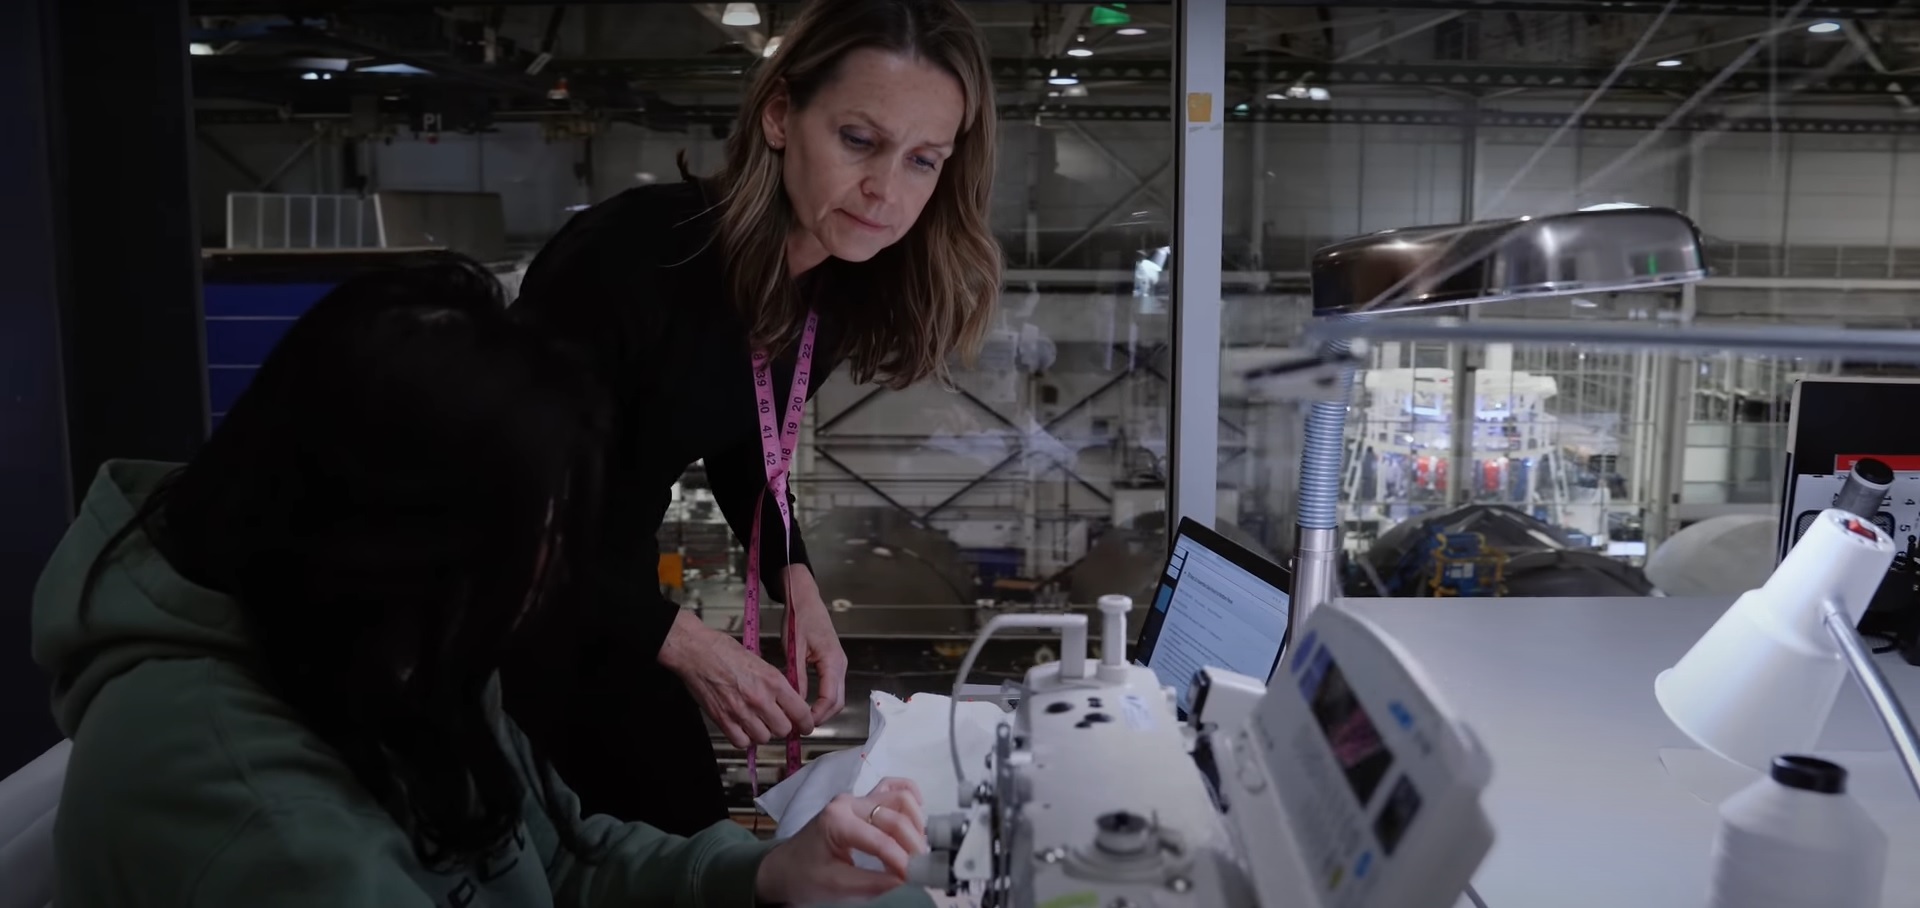 SpaceX-space-suit-lab-sewing-2